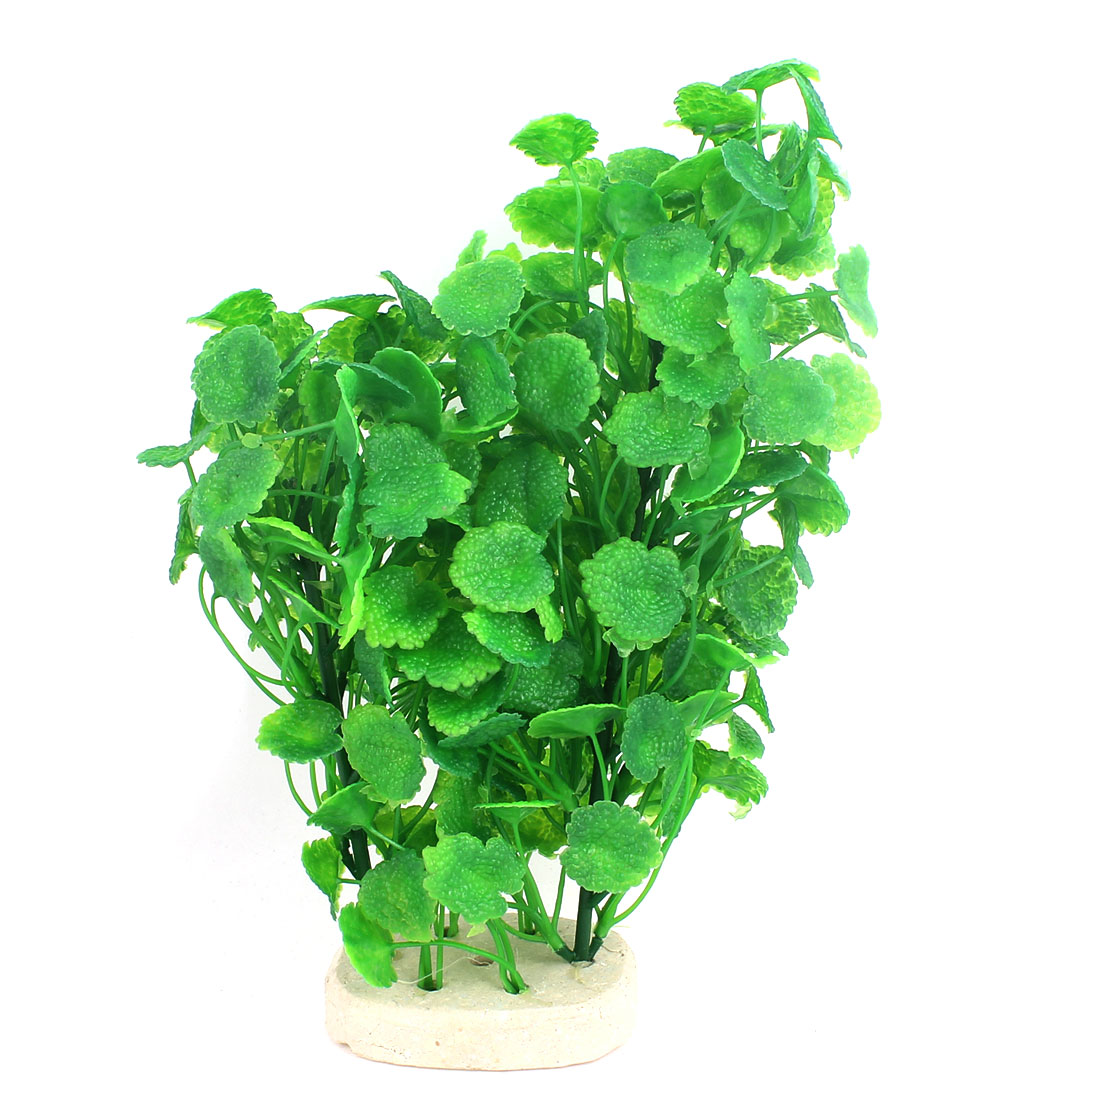 Aquarium Fish Tank Plastic Artificial Underwater Water Plant Ornament 9 Inch